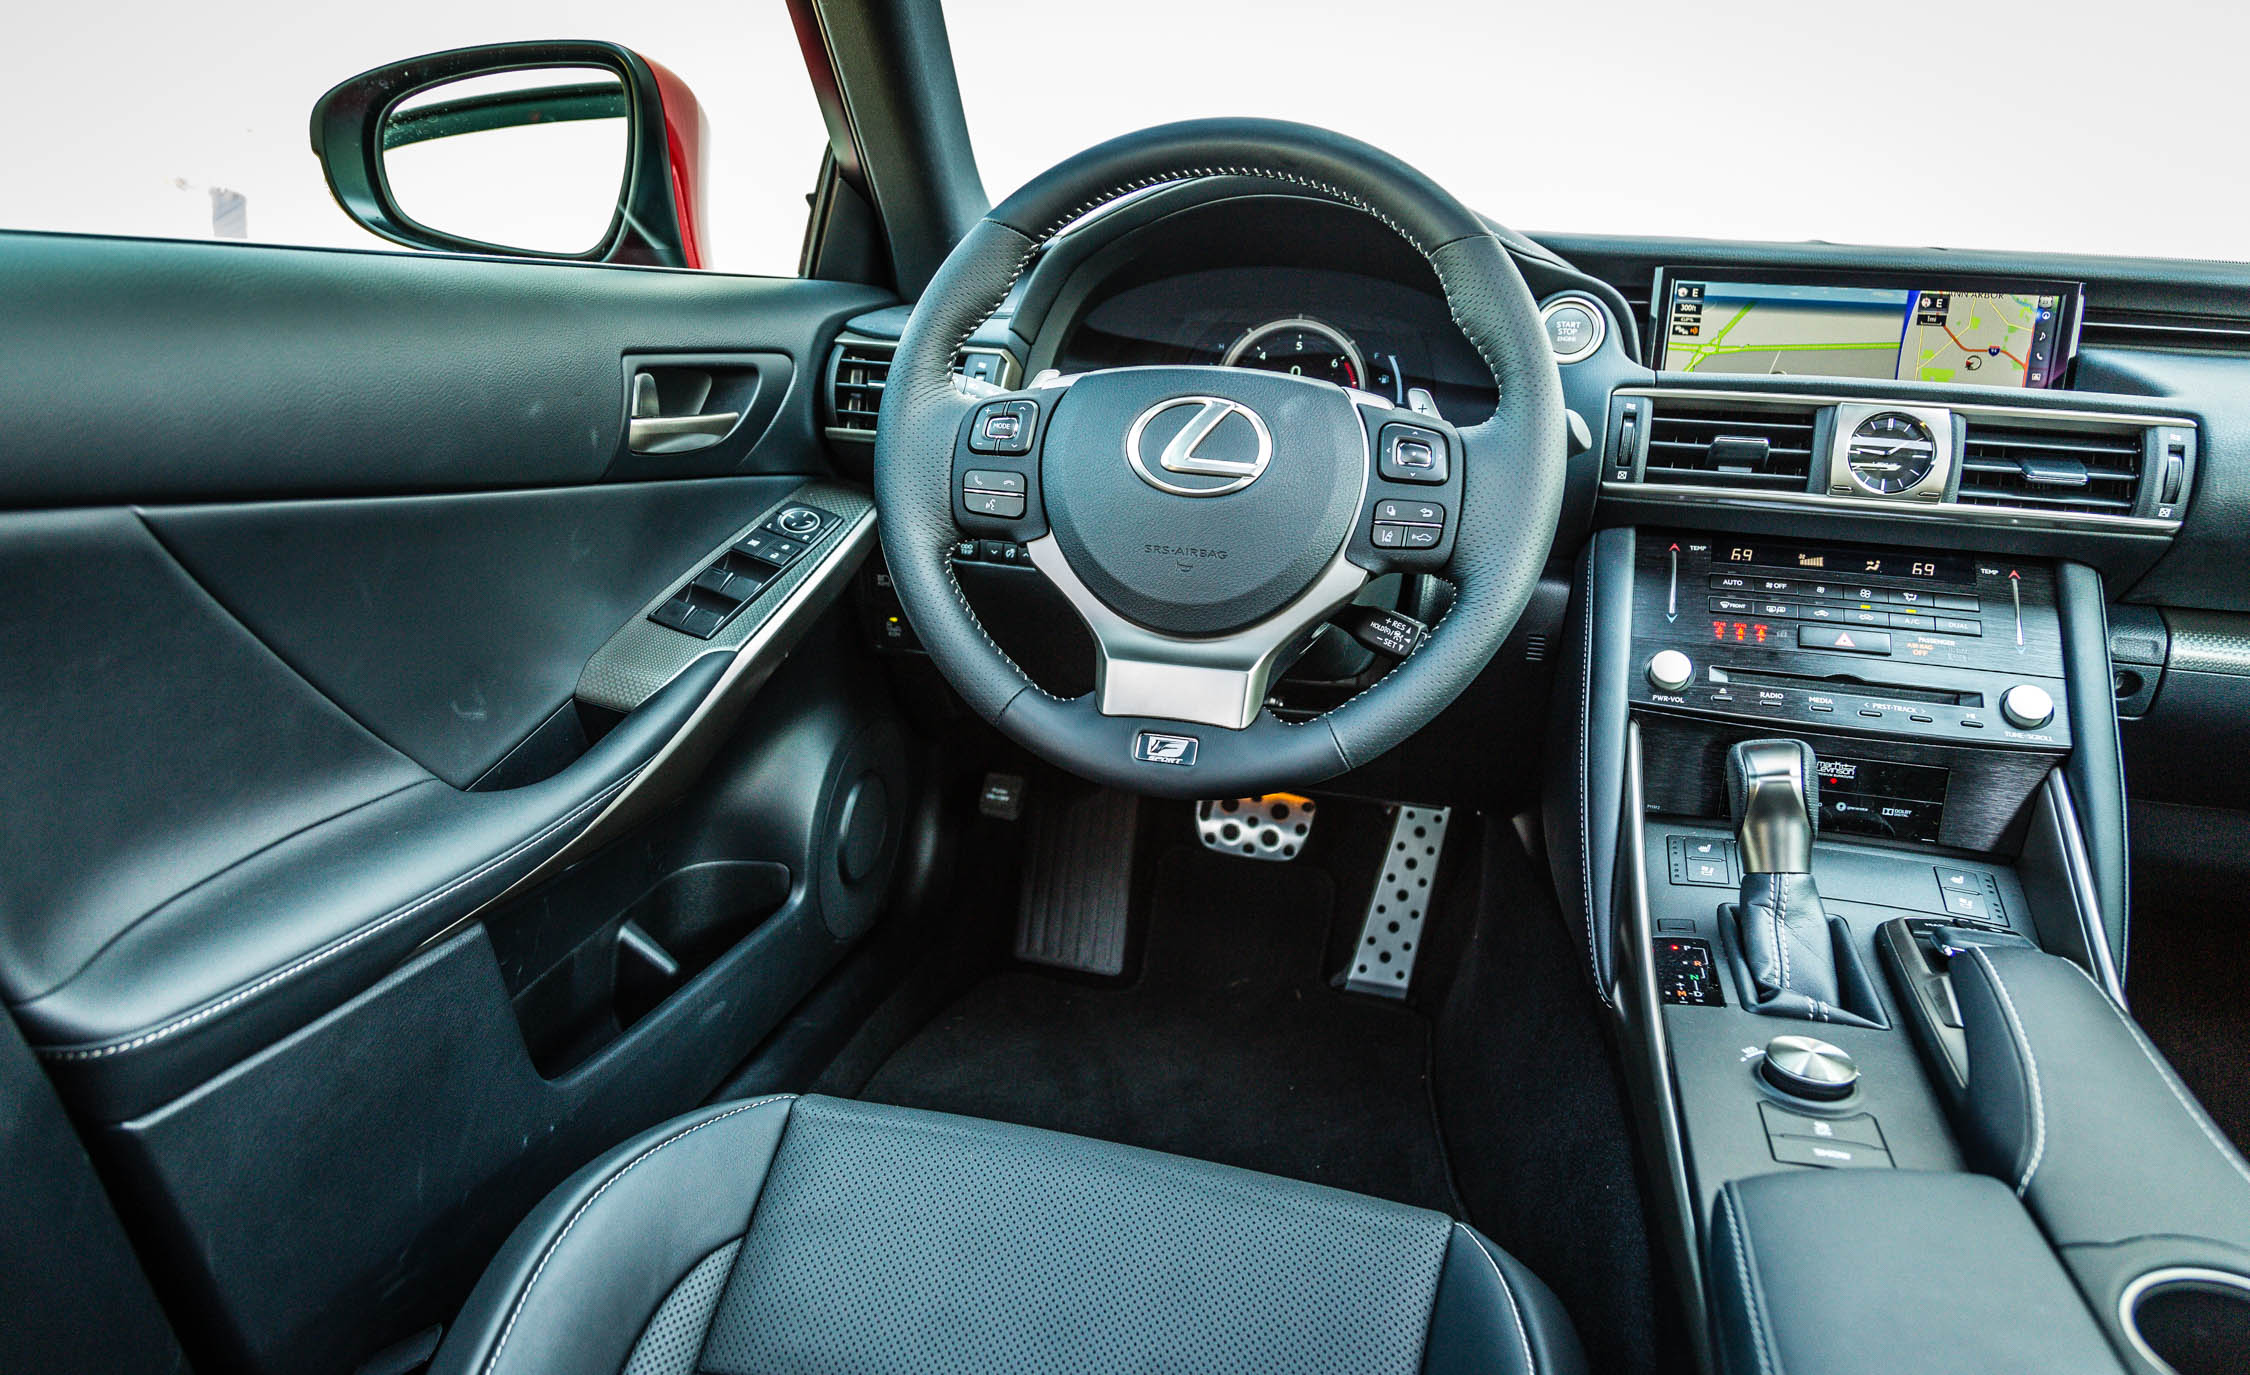 2017 Lexus IS 200t F Sport Interior Driver Cockpit Steering And Dash (Photo 6 of 29)